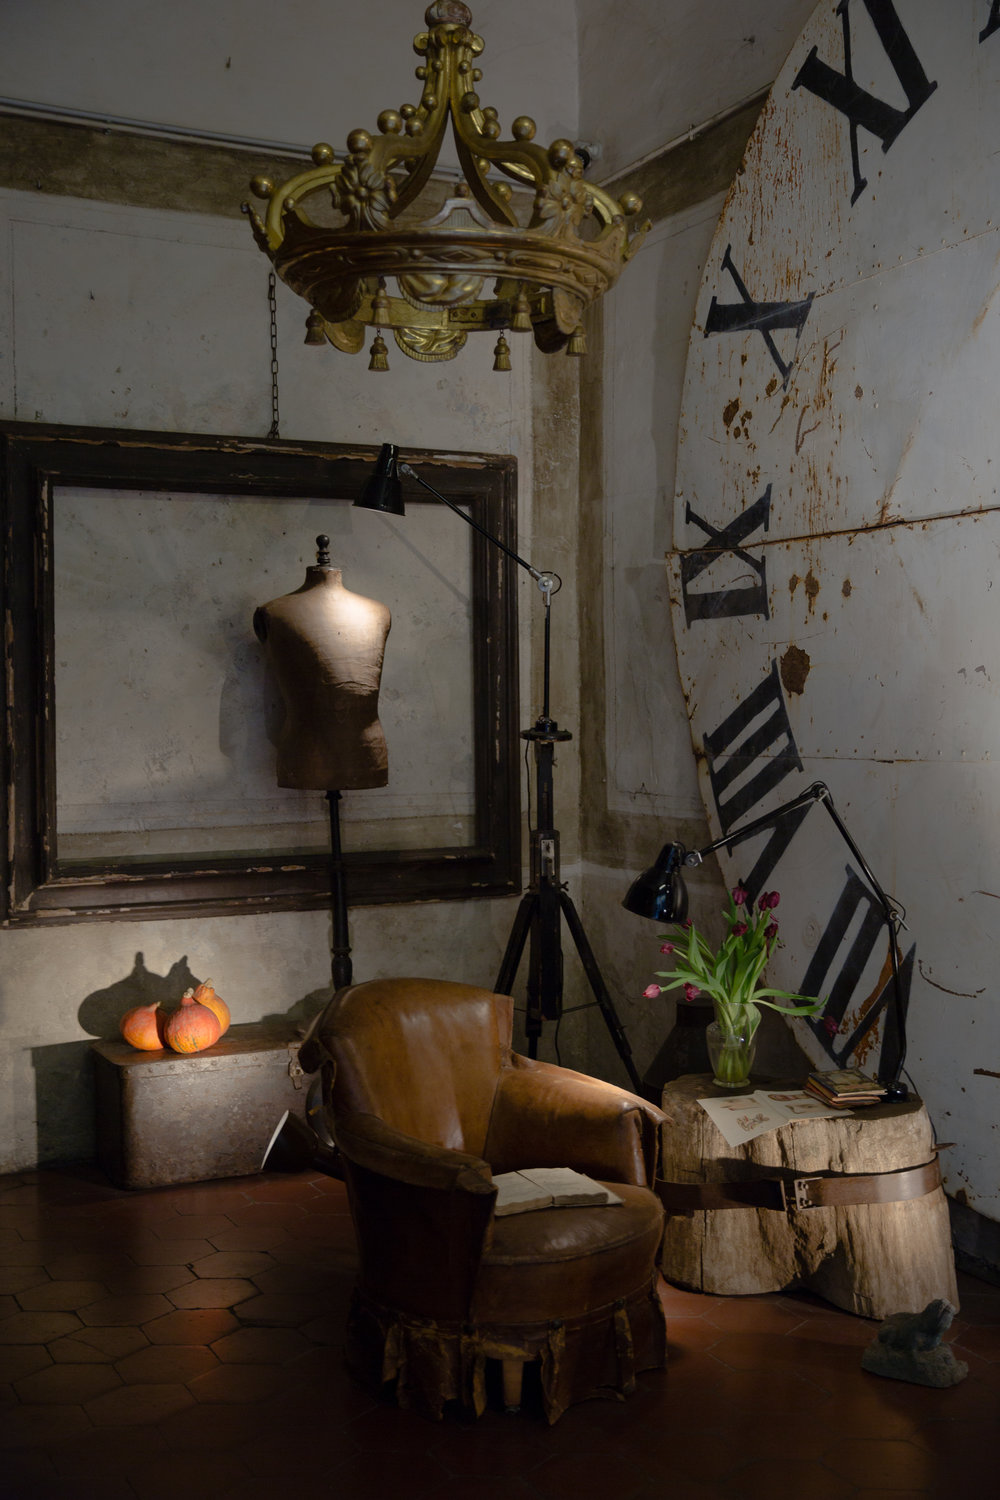 One of the vintage shops in Santo Sppirito